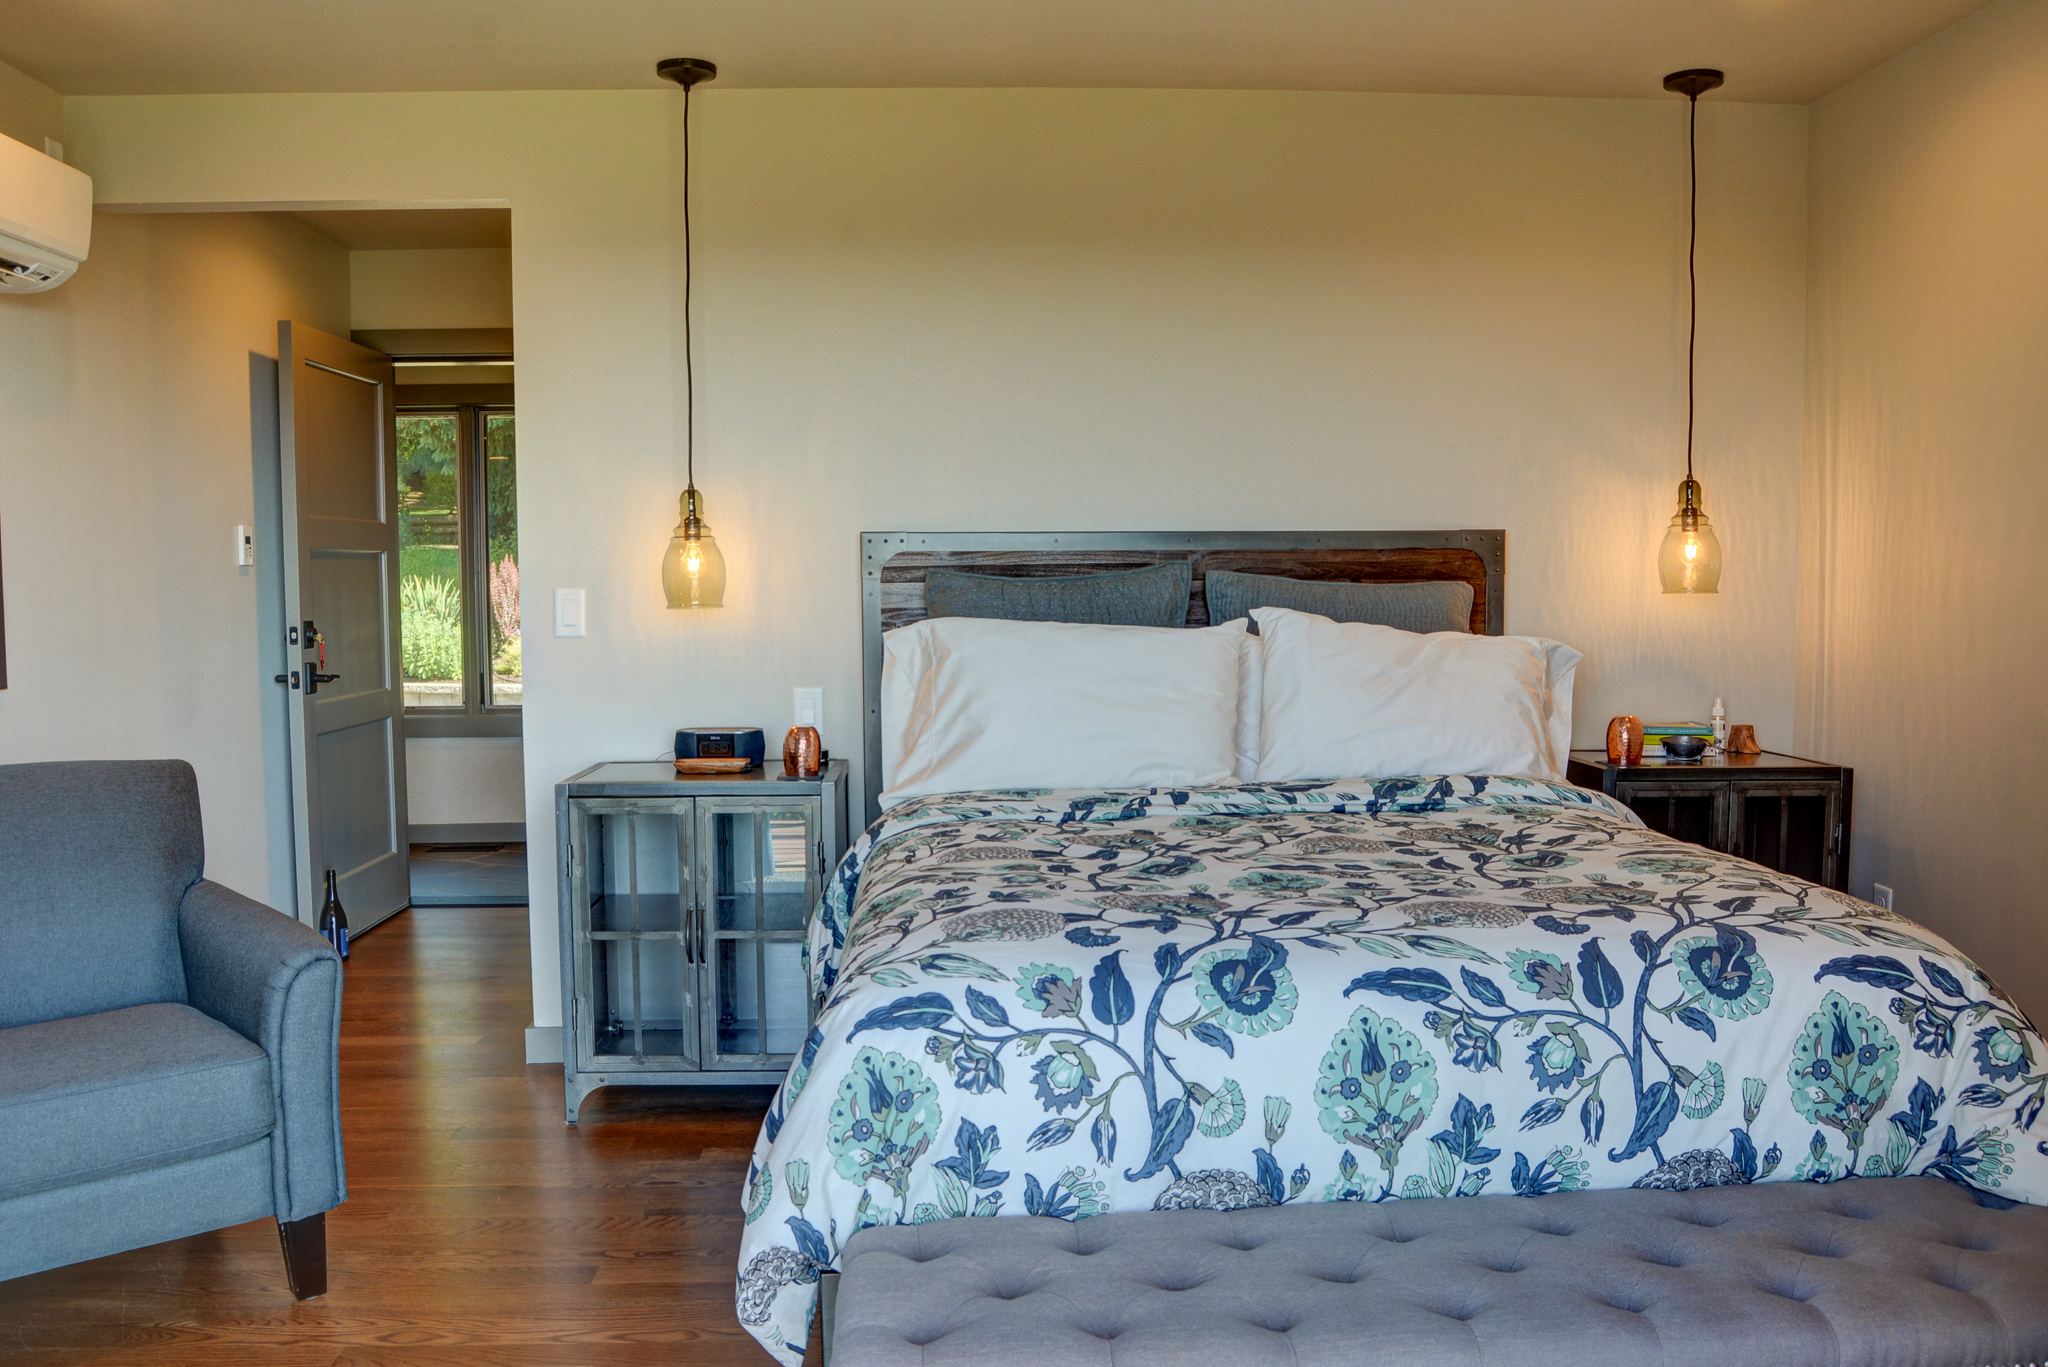 The Yamhill-Carlton room has a full queen bed and a sitting area, to enjoy morning coffee with a view